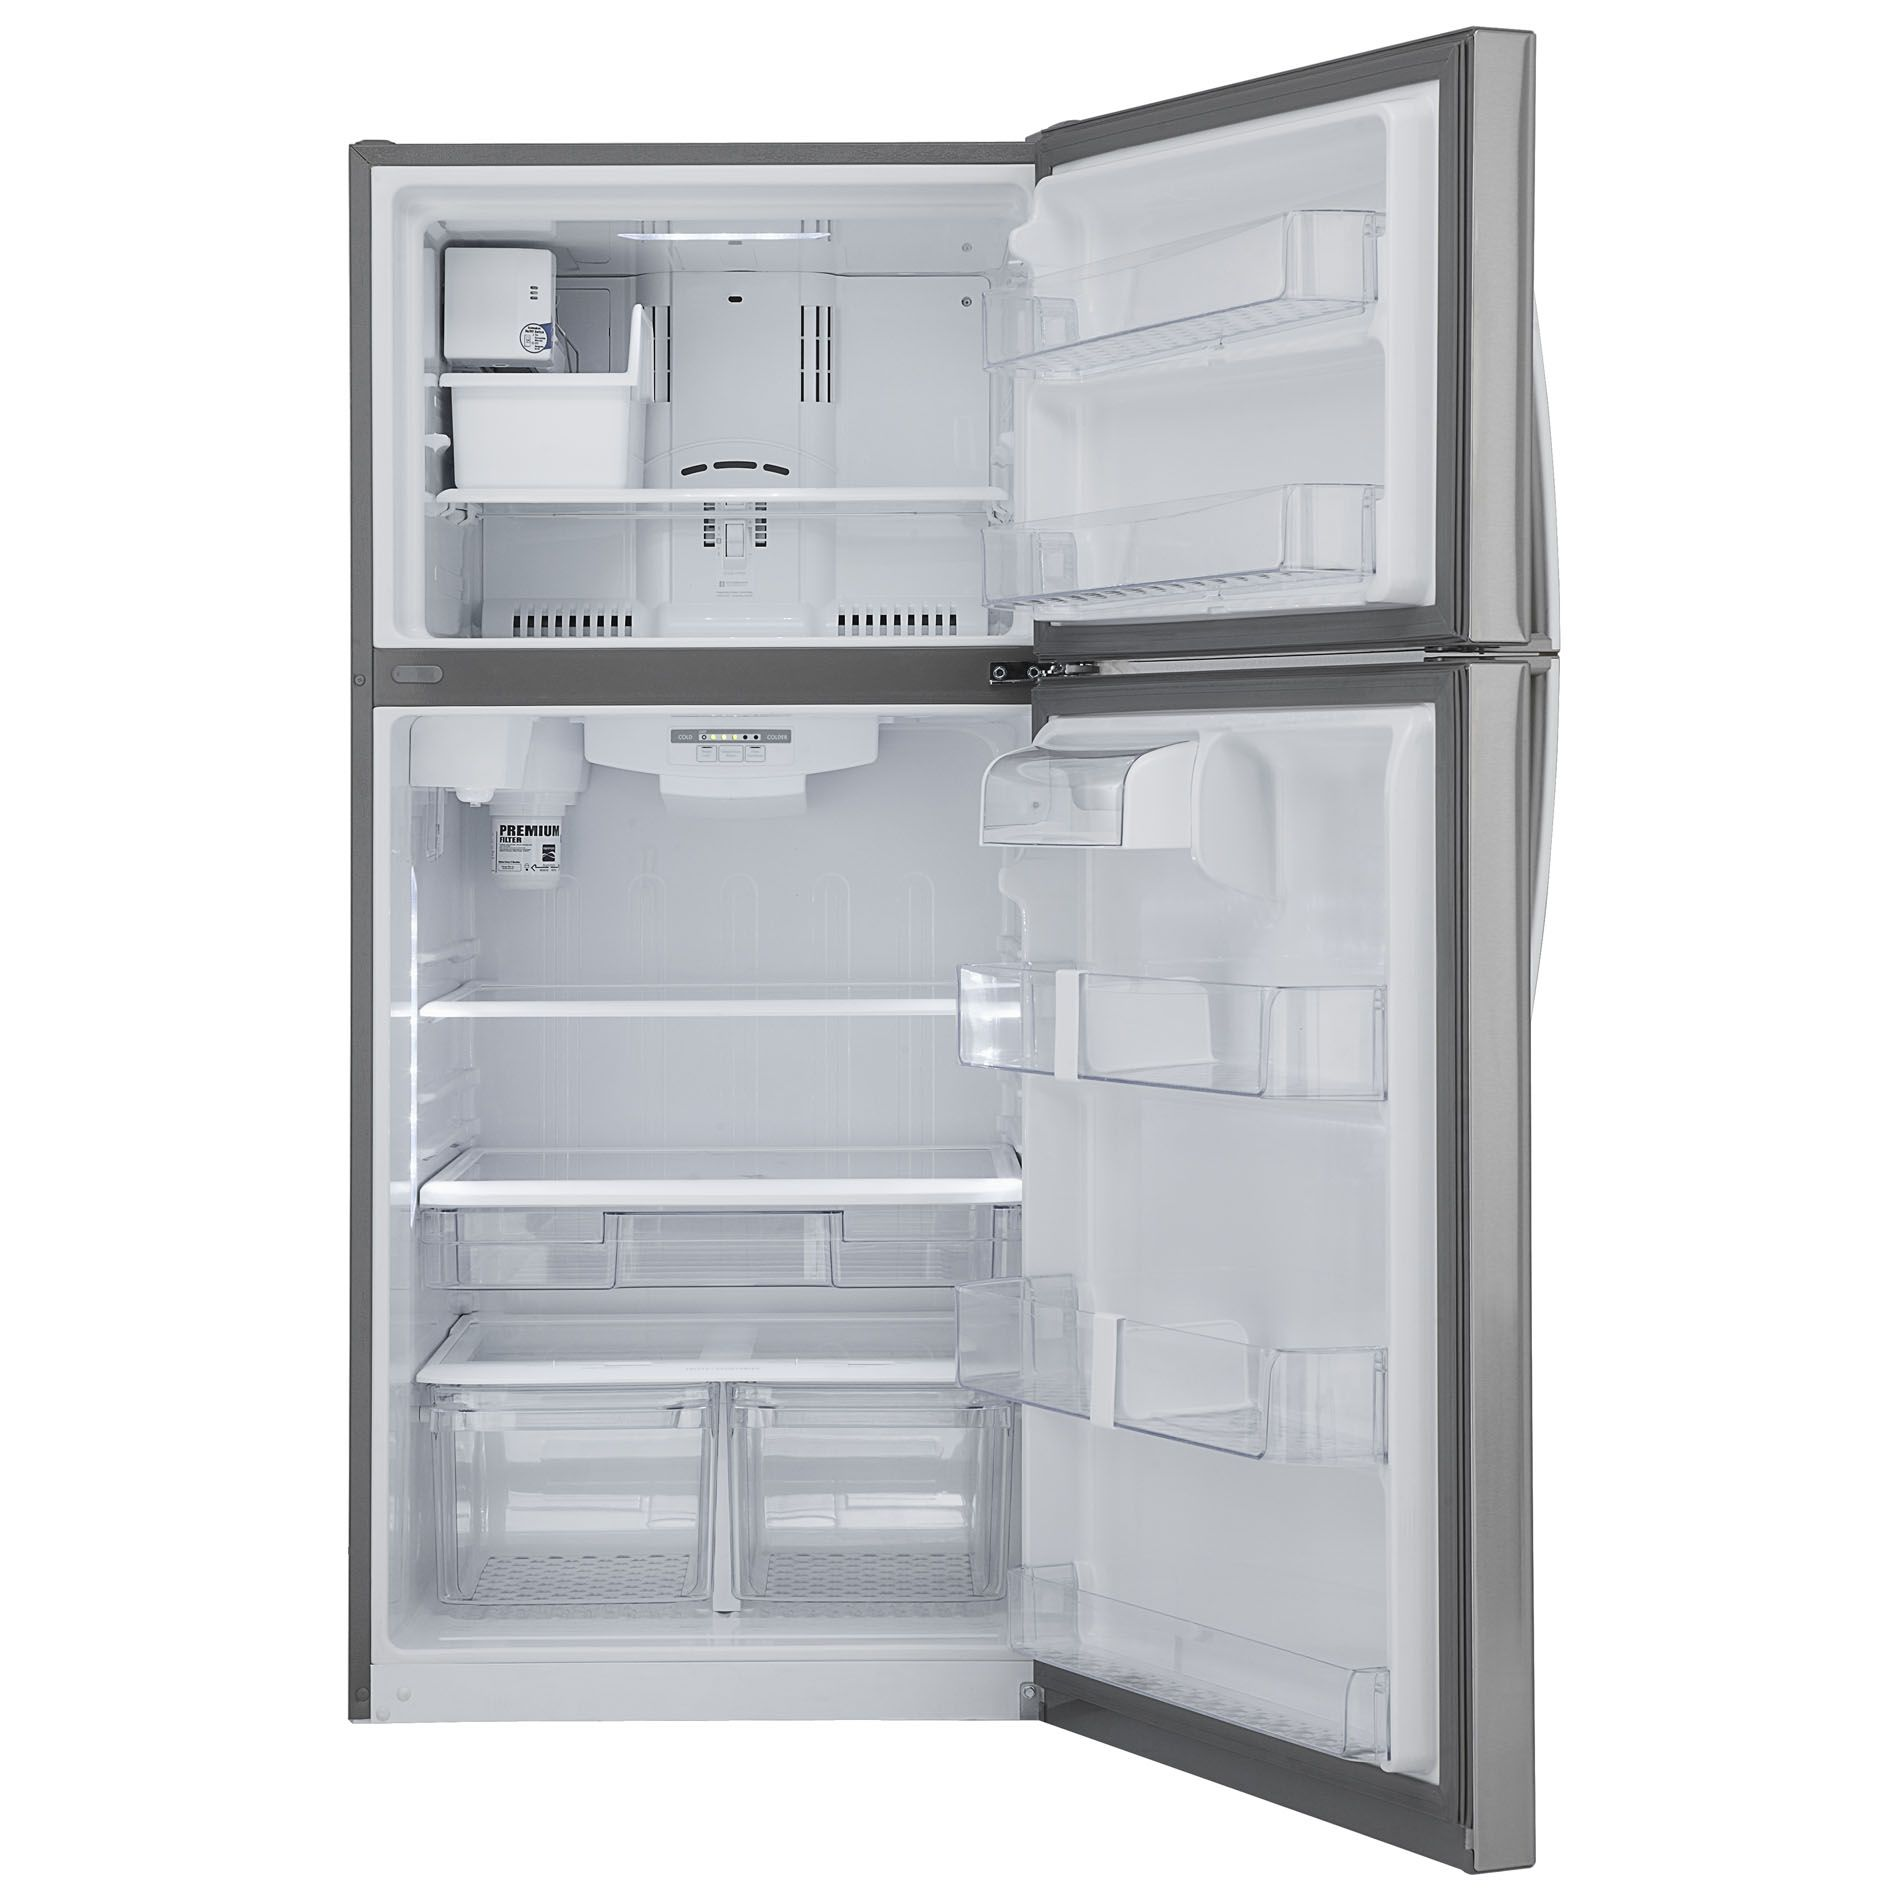 Kenmore 20 cu. ft. Stainless Steel Top-Freezer Refrigerator with Internal Water Dispenser